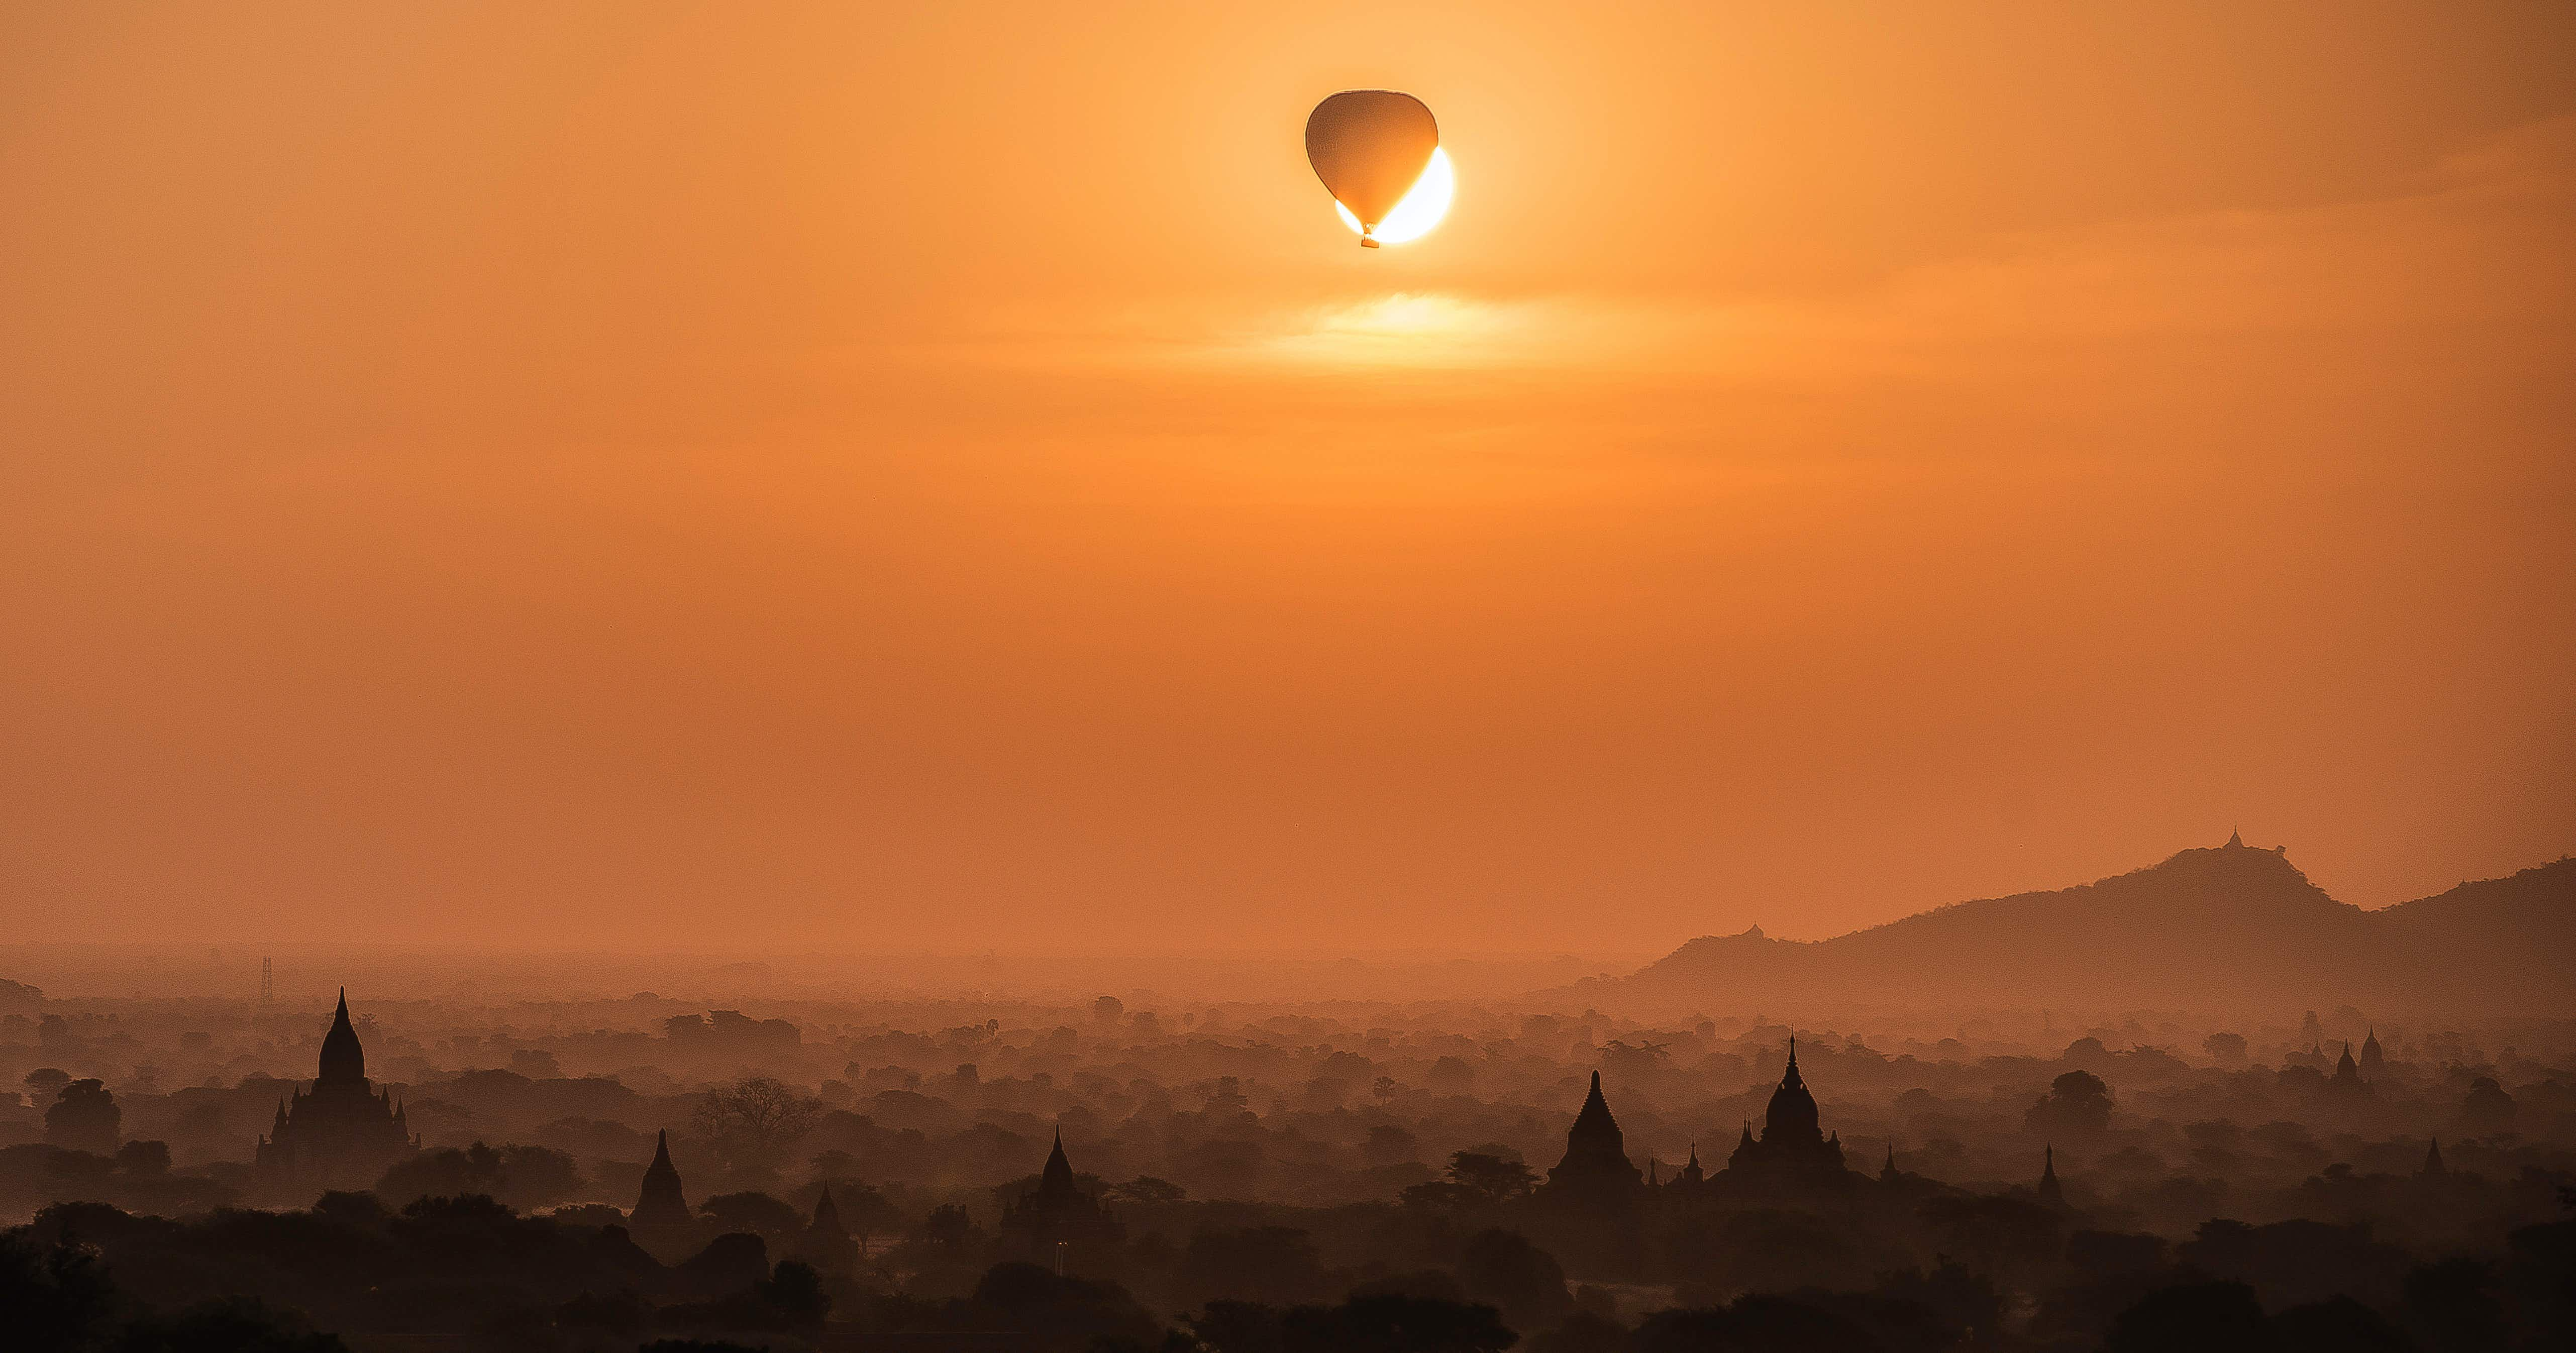 A Spanish student has captured his own solar eclipse with a hot air balloon in Myanmar